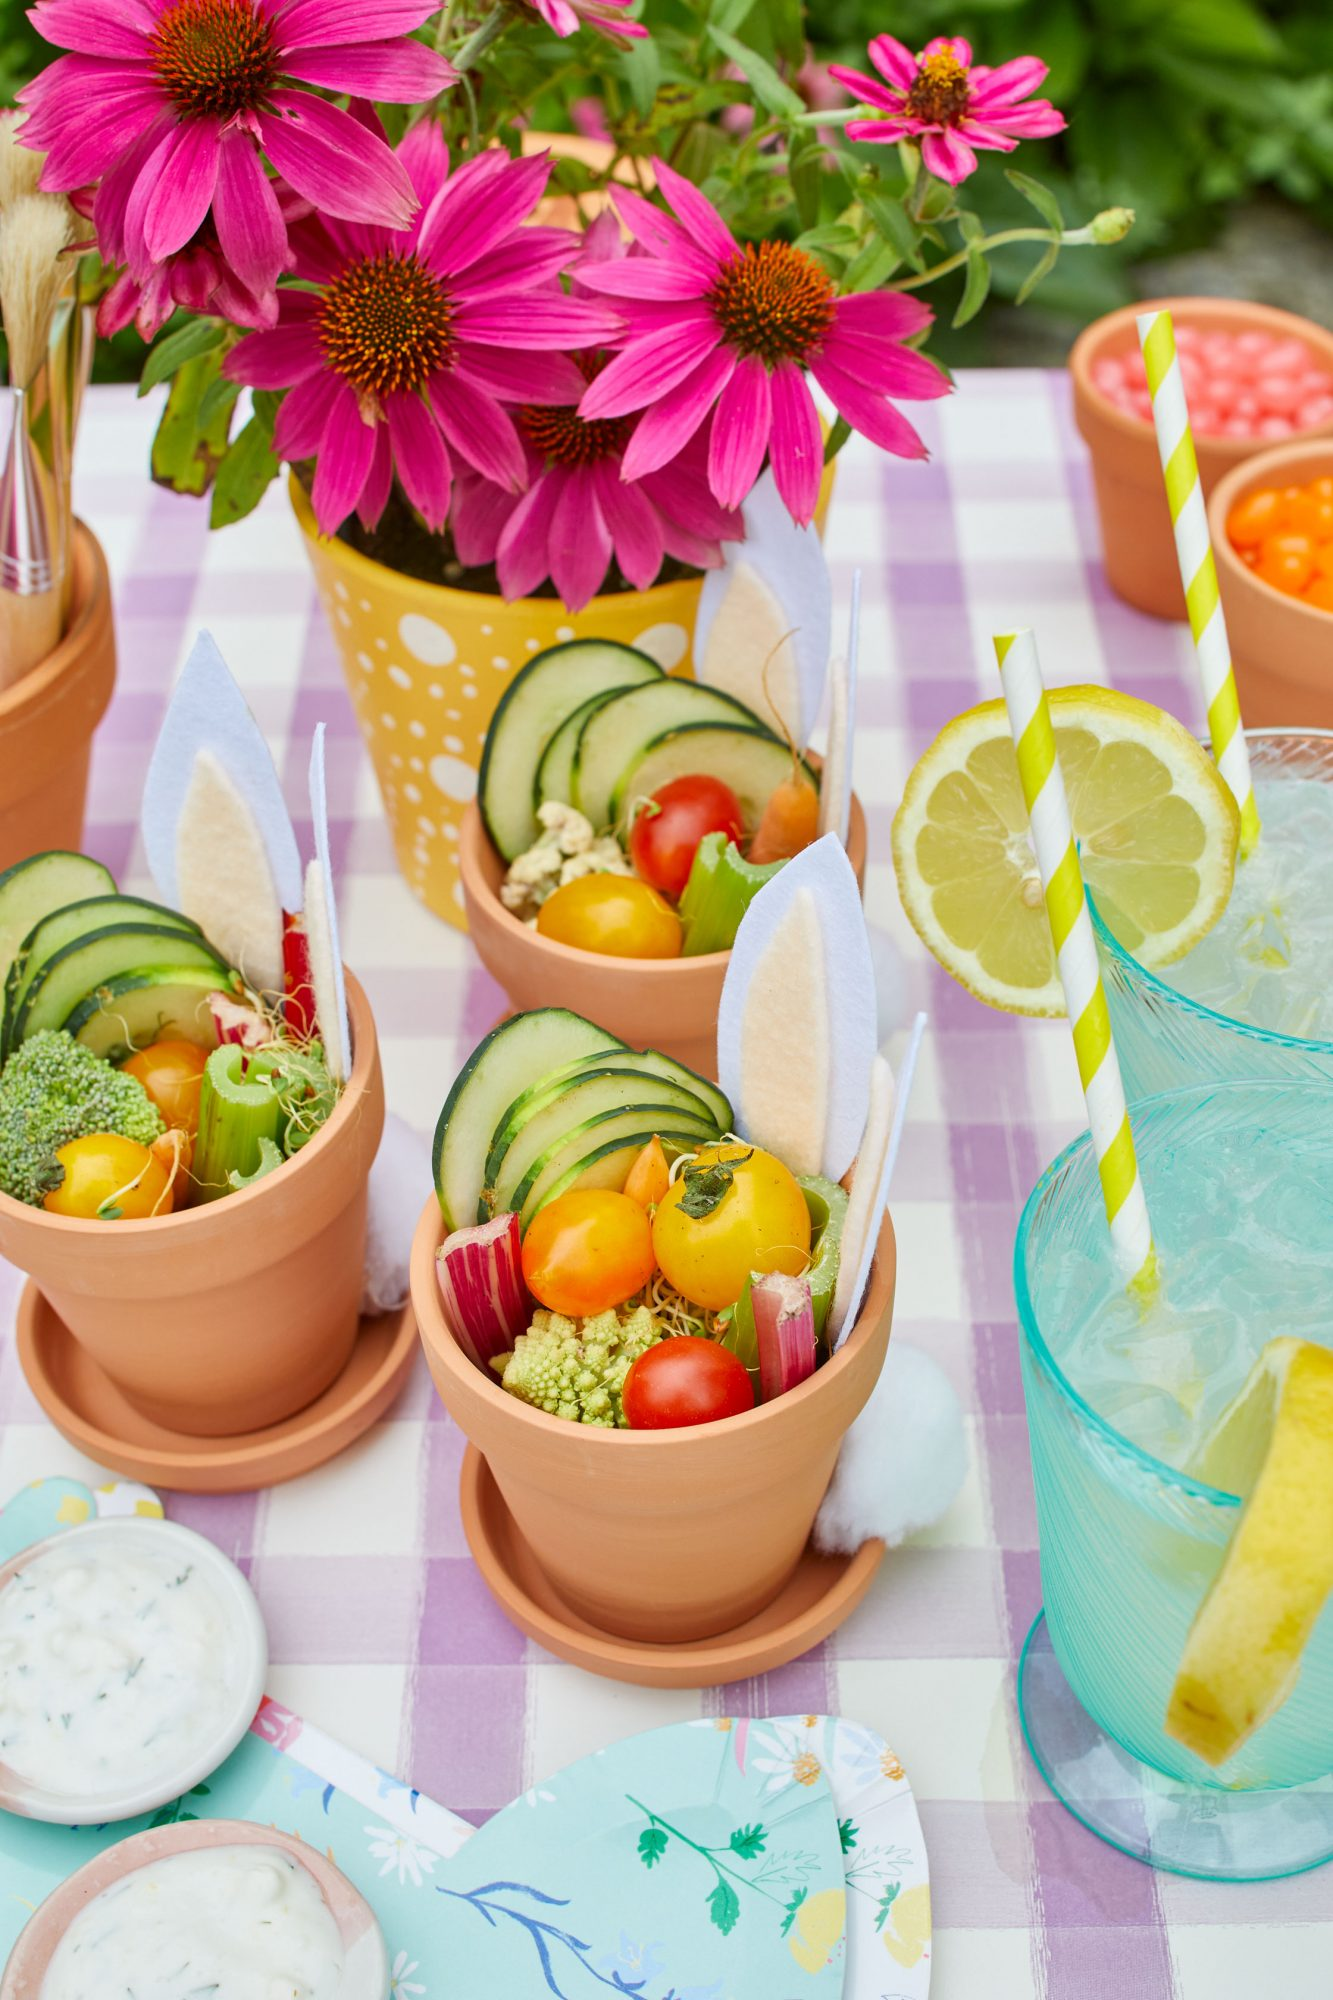 Individual Veggie Pots for Easter Themed Garden Party